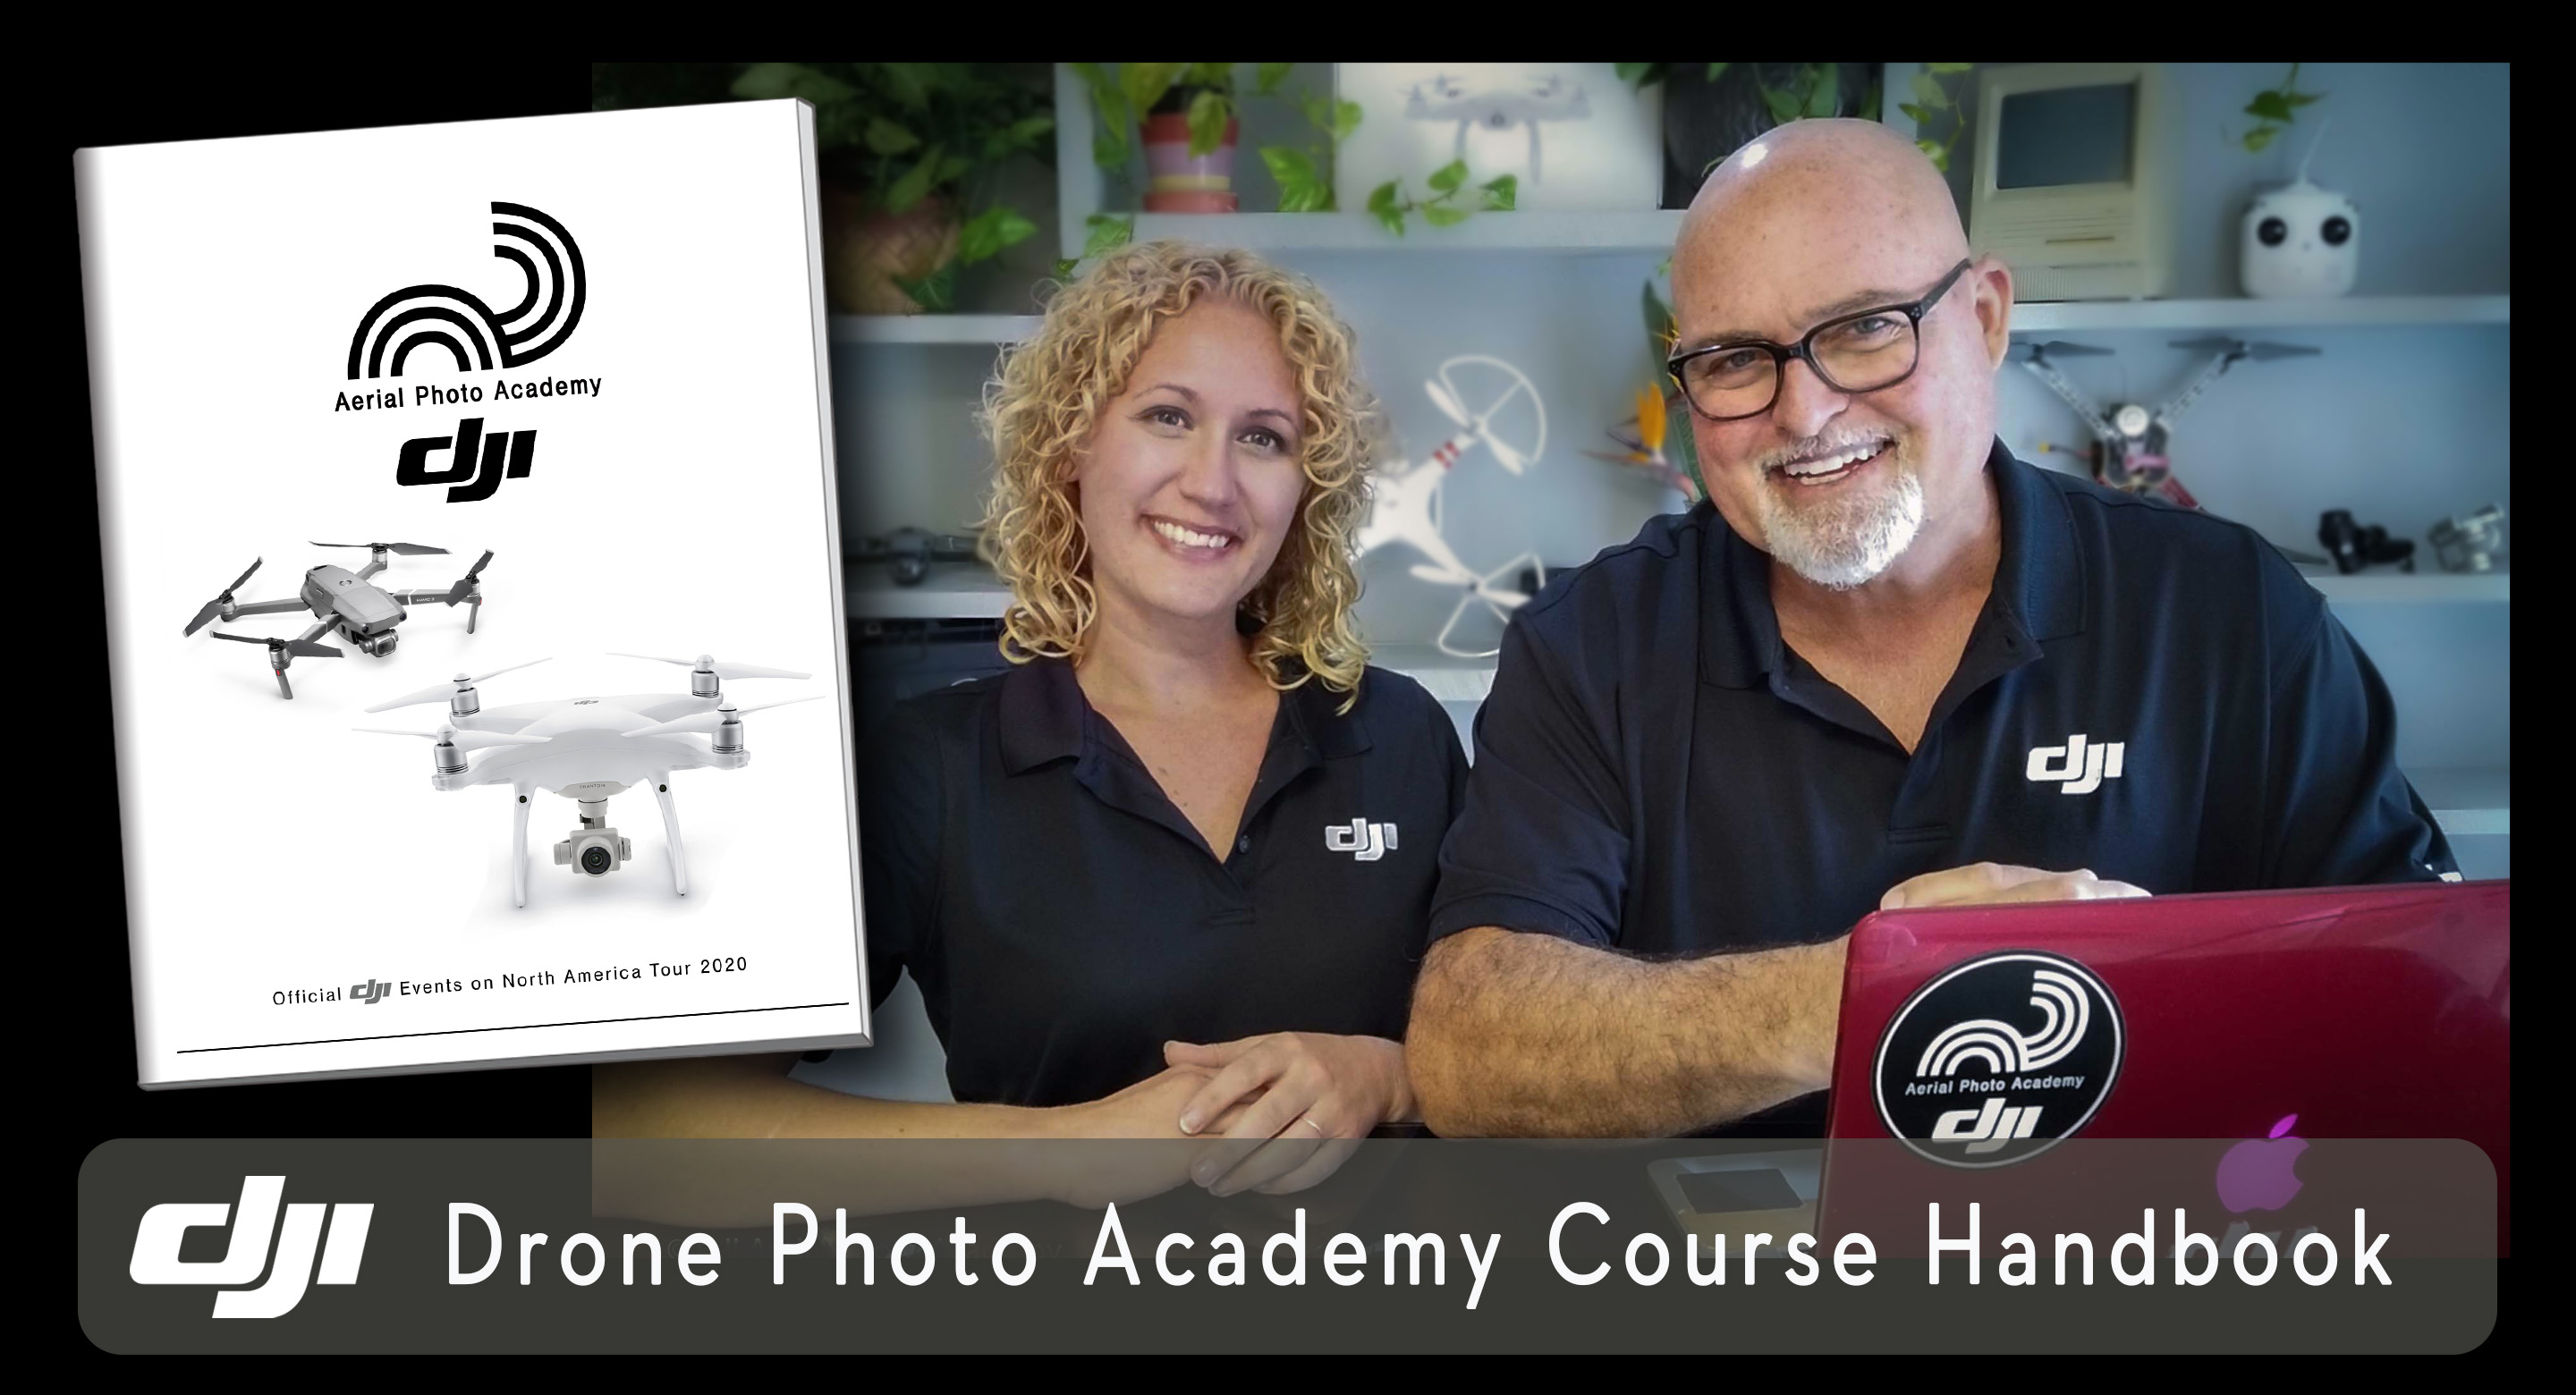 DJI Photo Academy Course Handbook